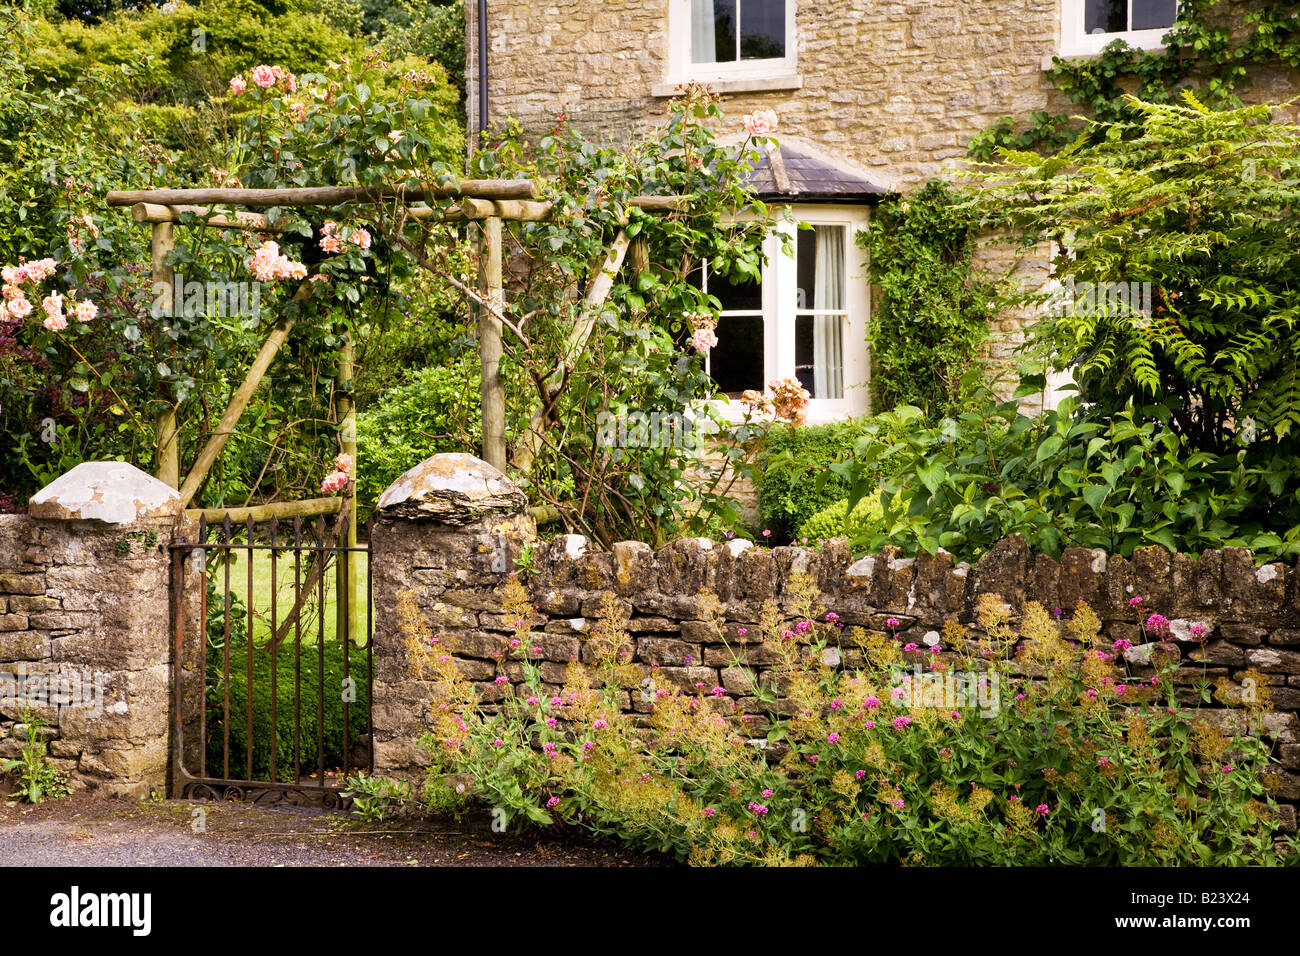 A pretty English country cottage in the Cotswold village of Ashton Keynes, Wiltshire, England, UK - Stock Image